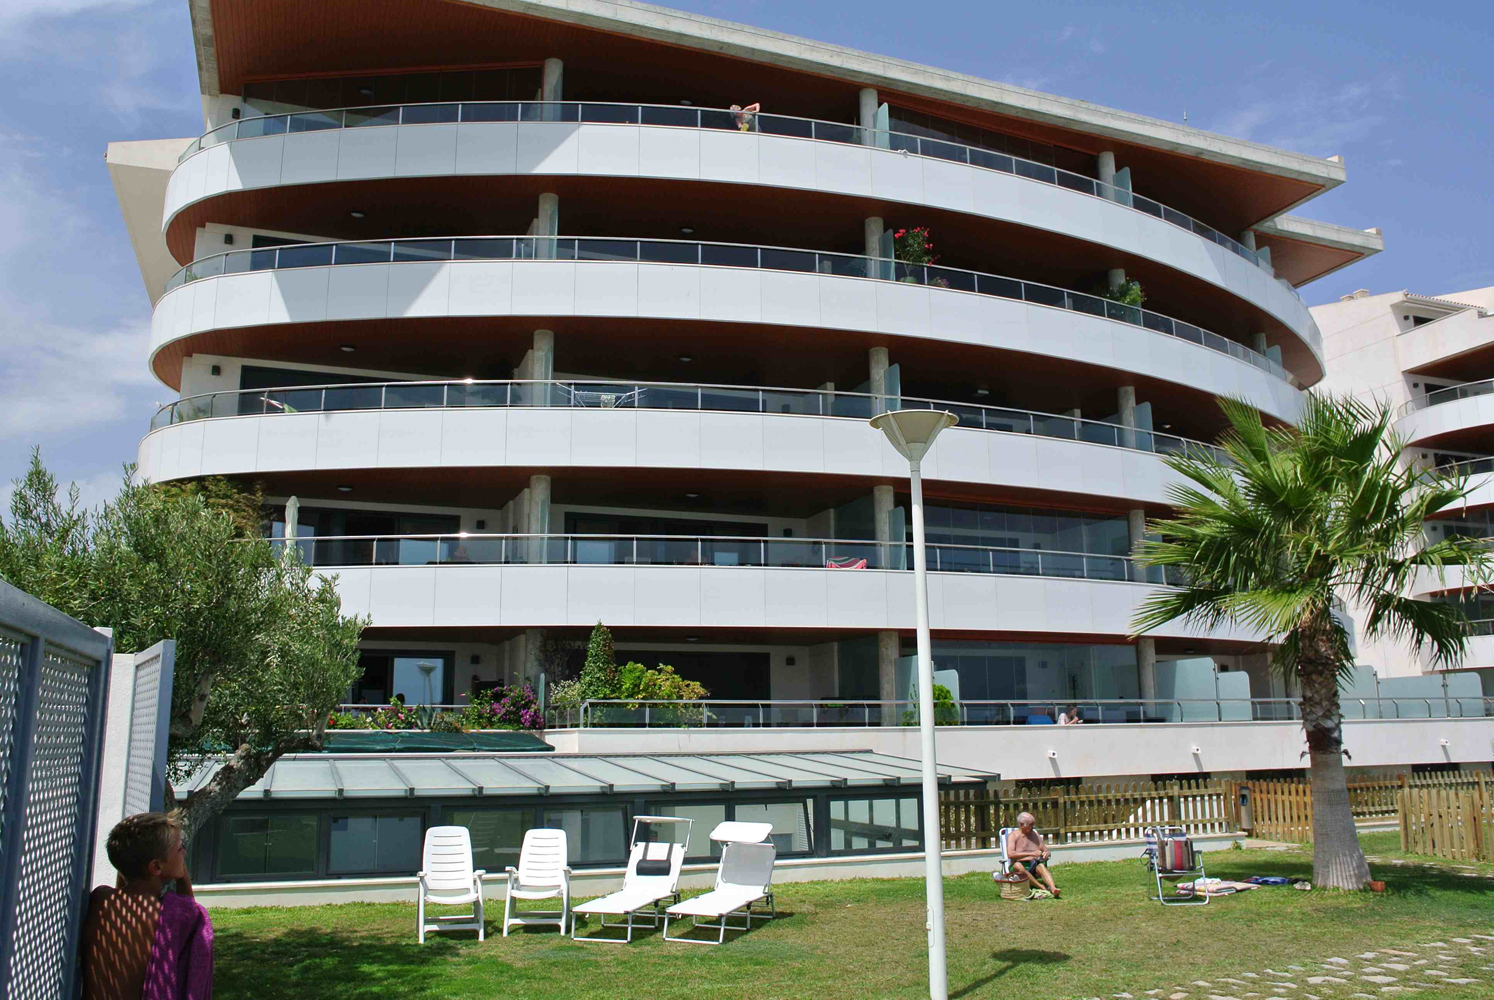 Bahia Blanca Apartment In Altea Buy A House In Calpe